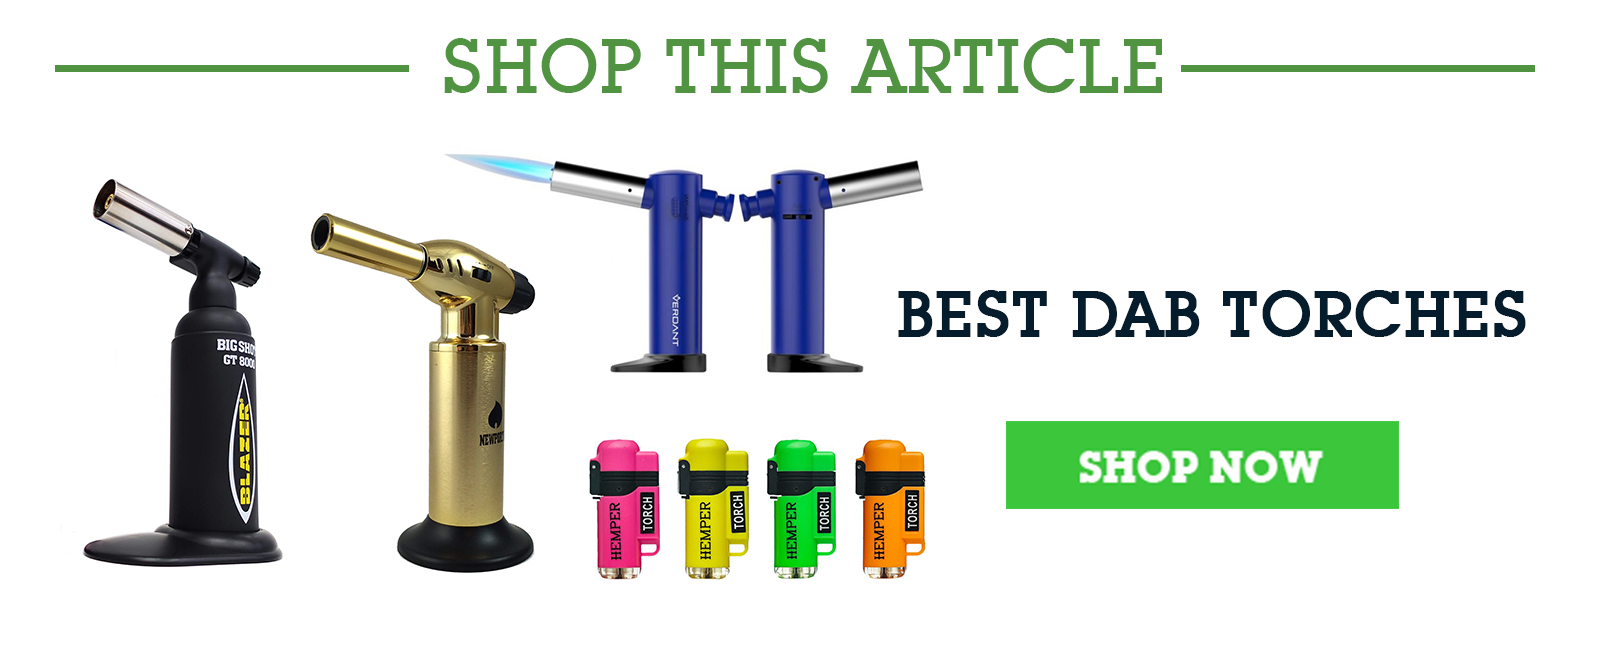 HEMPER Best Butane Dab Torches